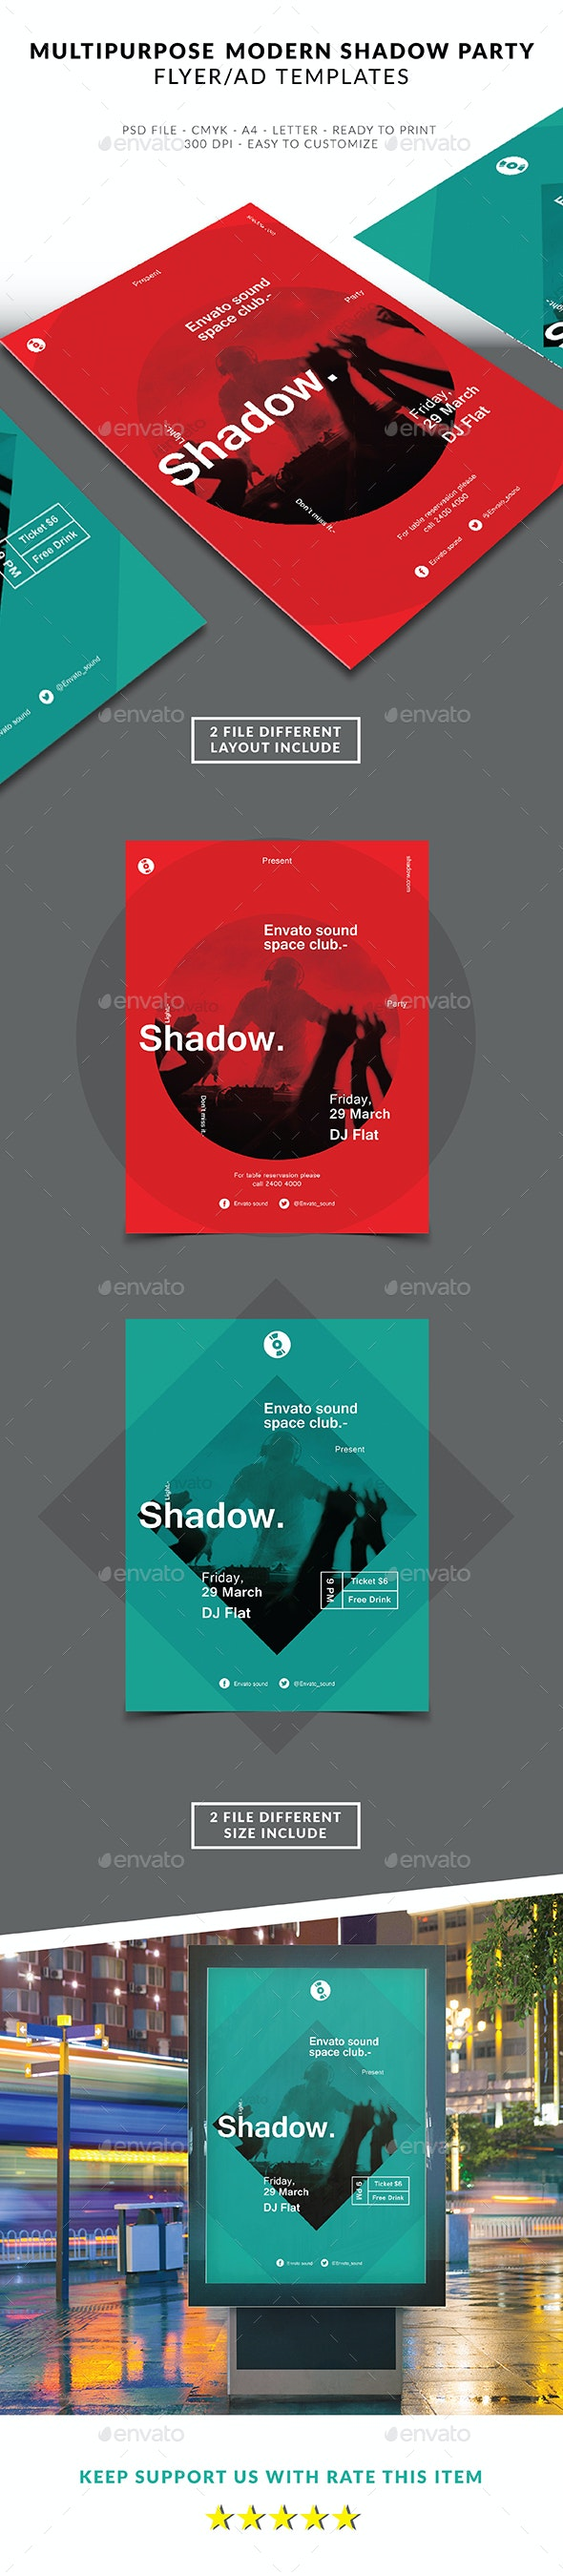 Multipuprose Flyer Modern Shadow Party - Clubs & Parties Events